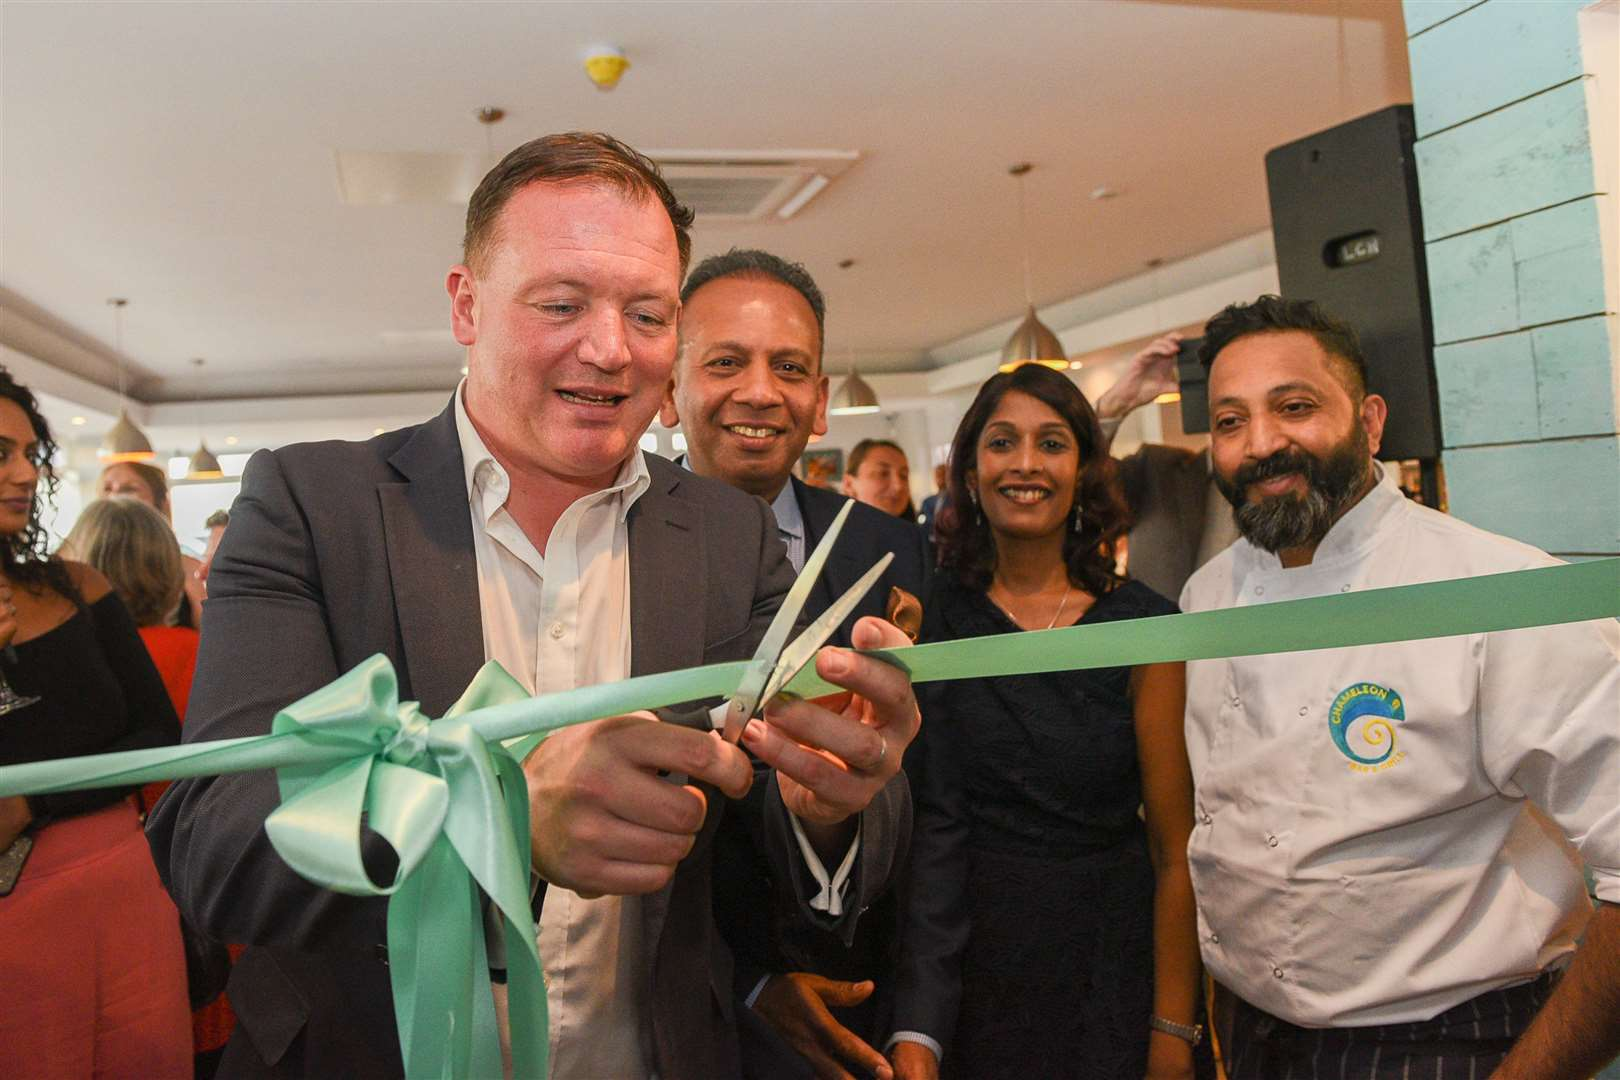 MP Damian Collins cuts the ribbon at the official opening